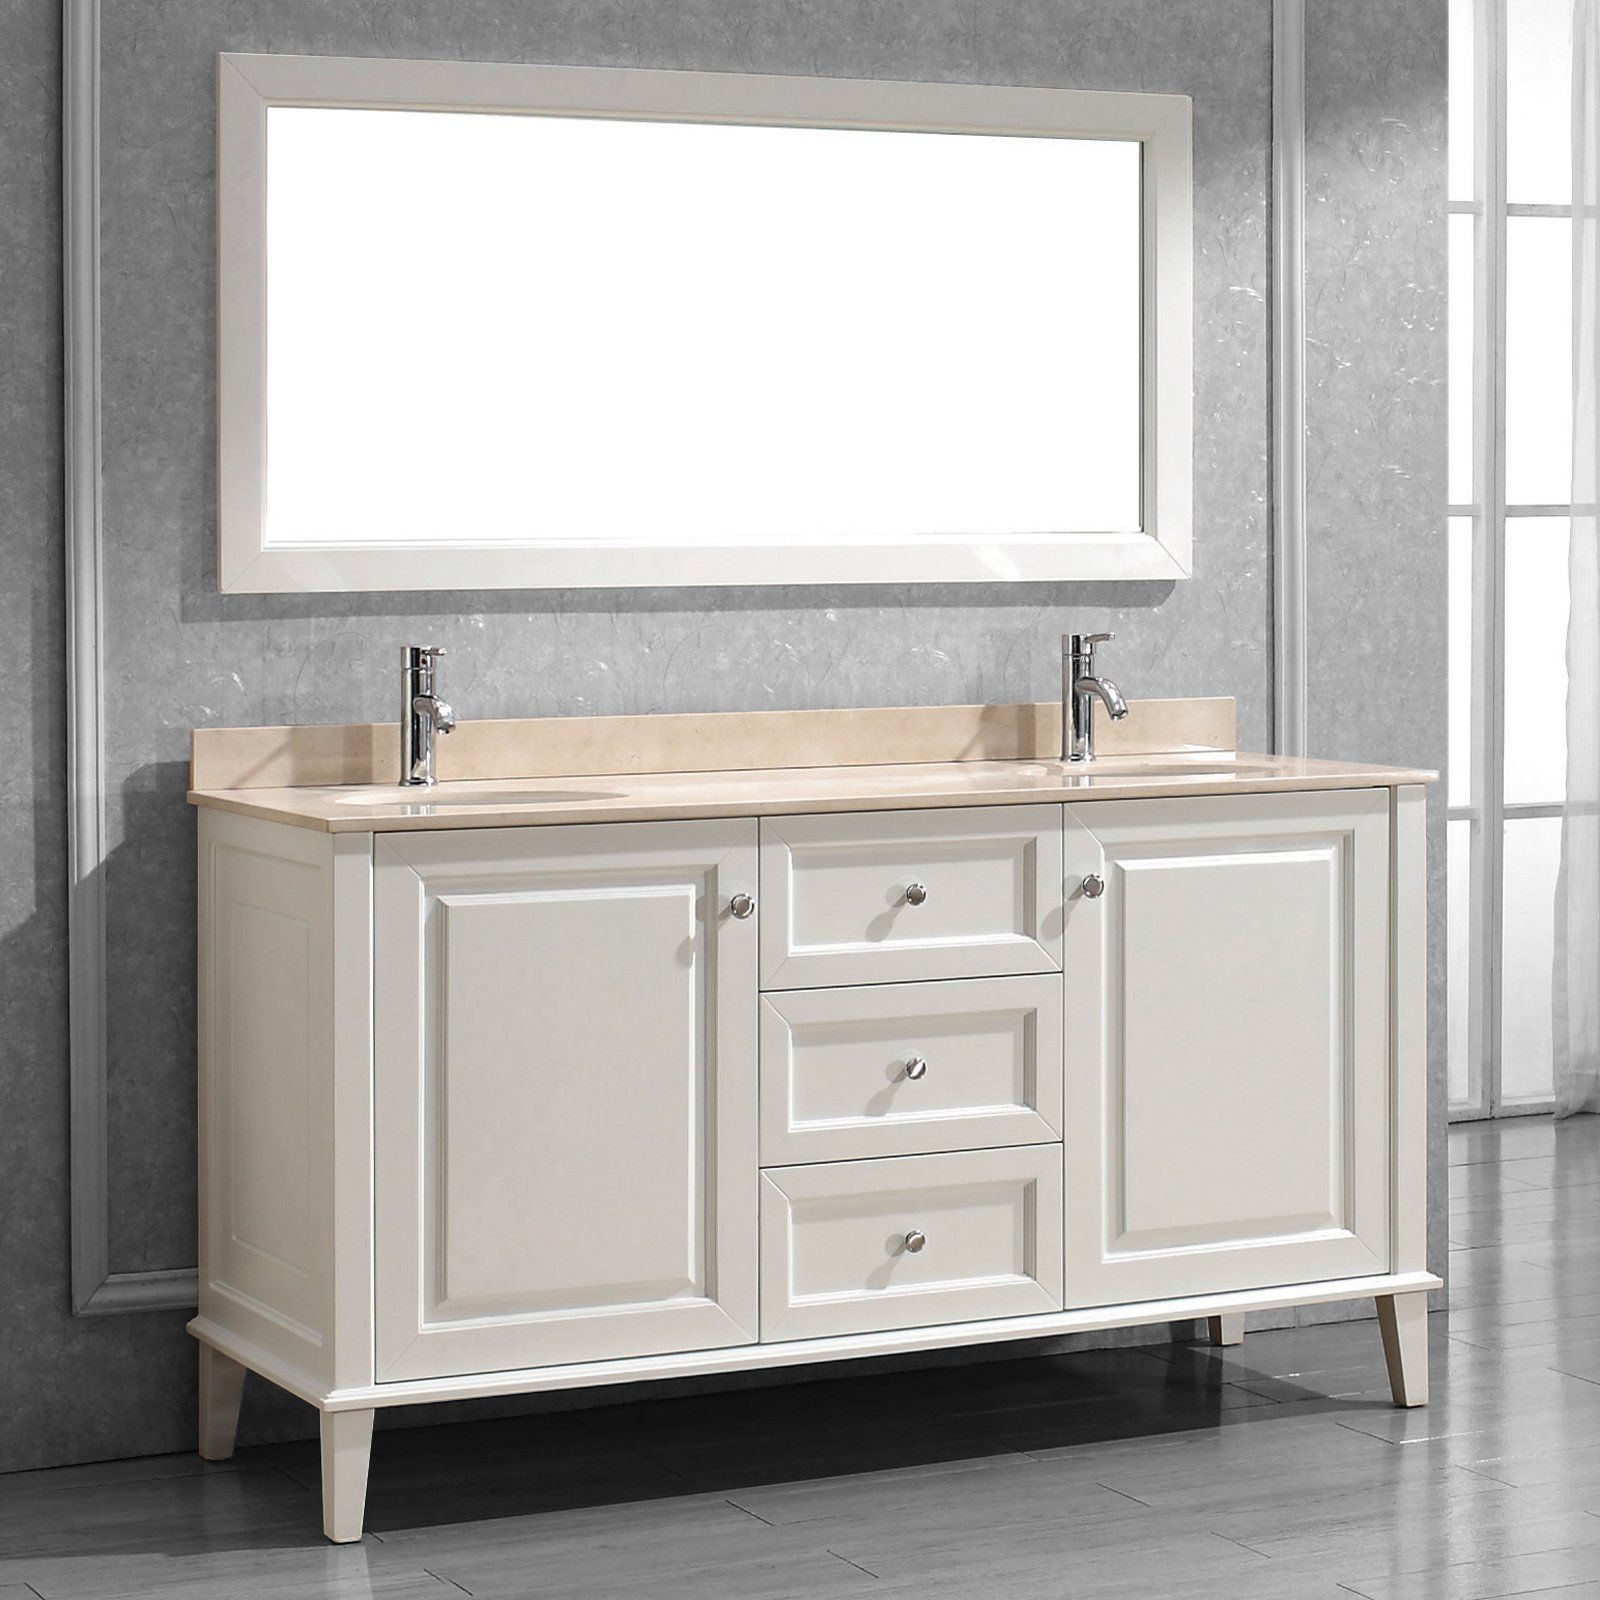 Bauhaus Bath Milly 63 In Single Bathroom Vanity Set With Mirror